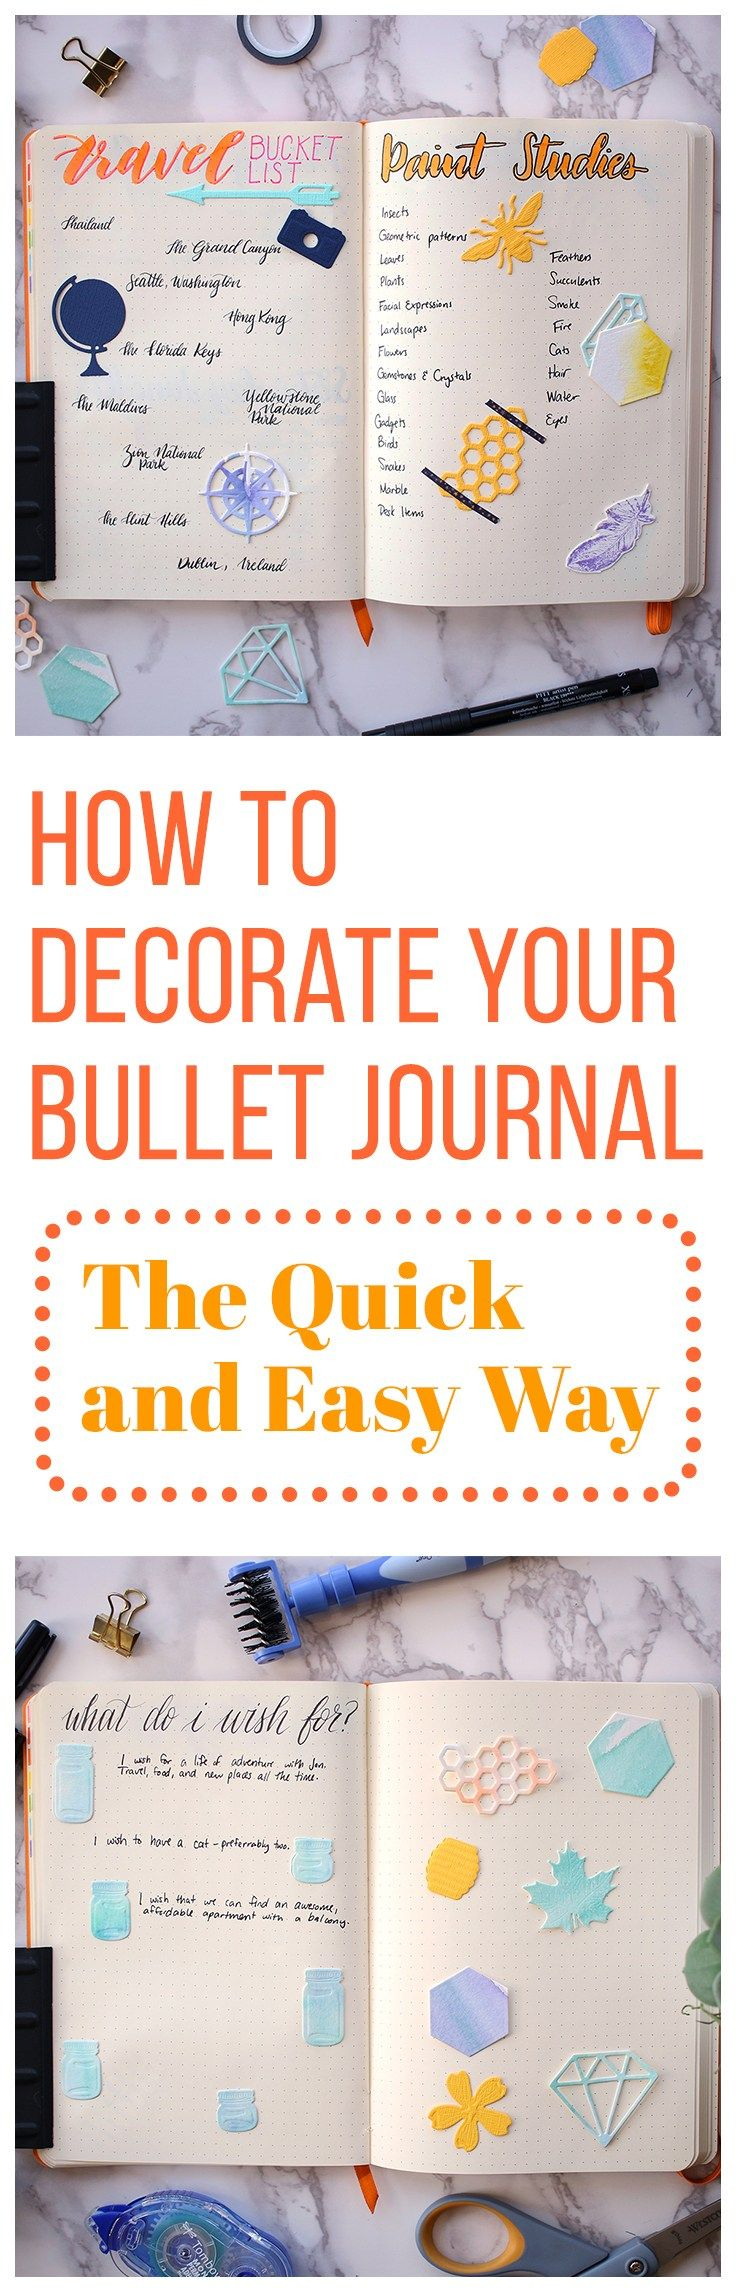 When you're short on time, it can be hard to justify sitting down with your bullet journal for hours to make it look good. And if you aren't super artistic, it can be even more frustrating. Thankfully, there is a way to get the best of both worlds! If you're wondering how to decorate your bullet journal quick, then this little tool is for you.